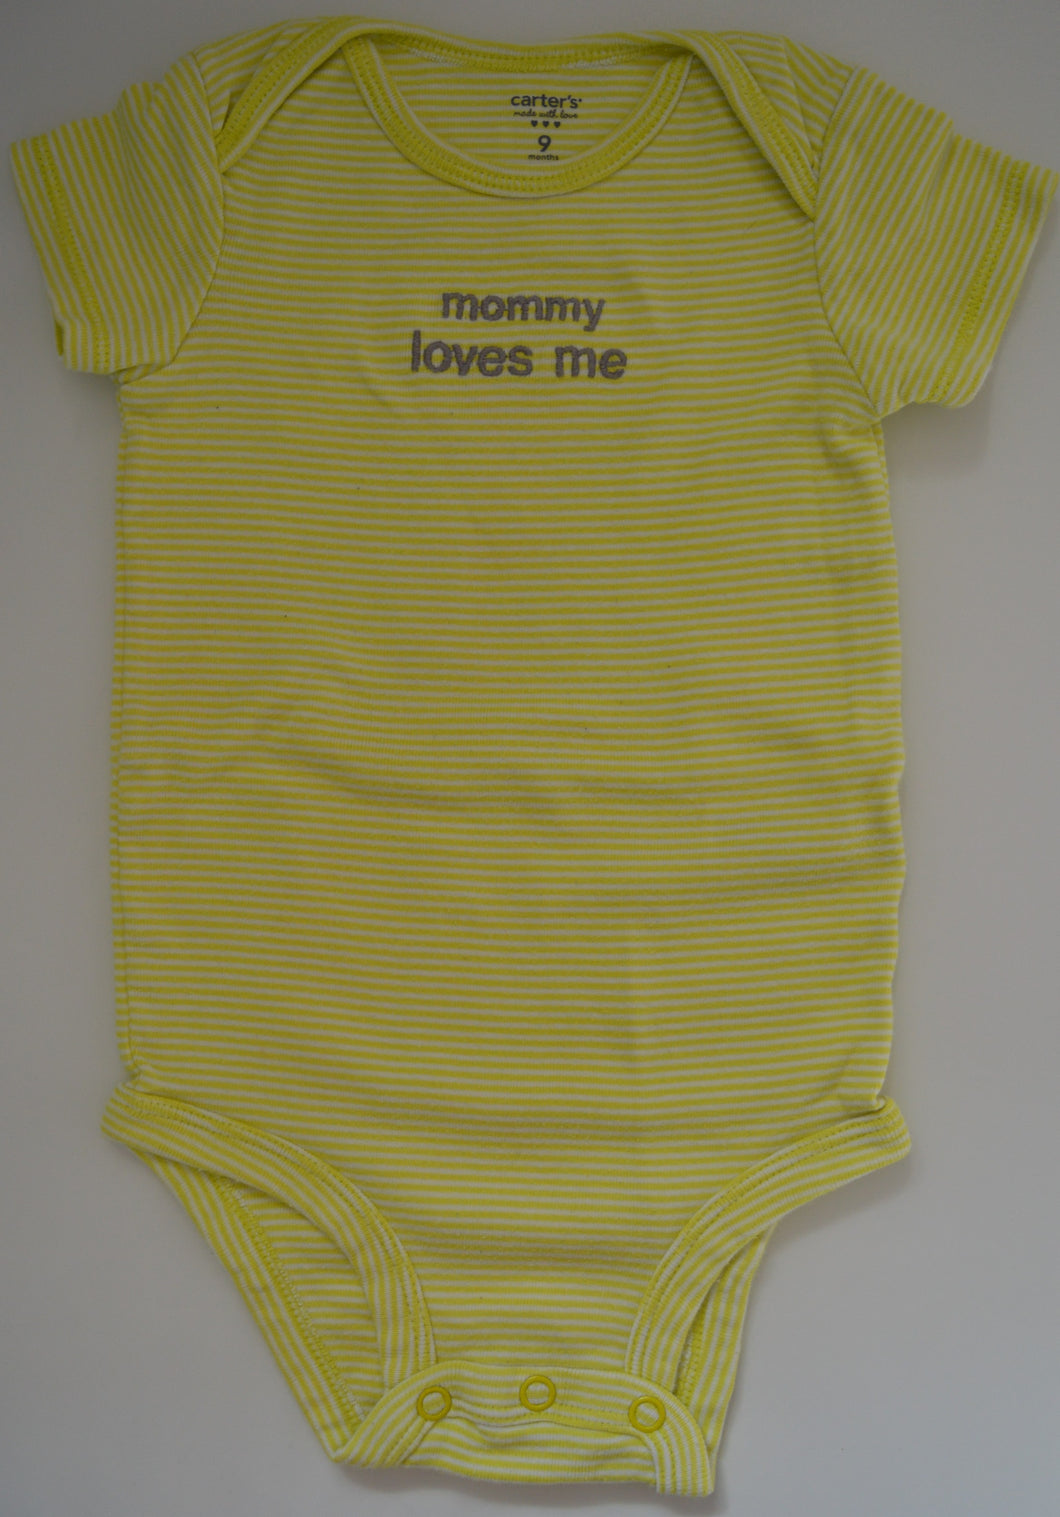 Carter's Green with White Striped Mommy Loves Me Onesie